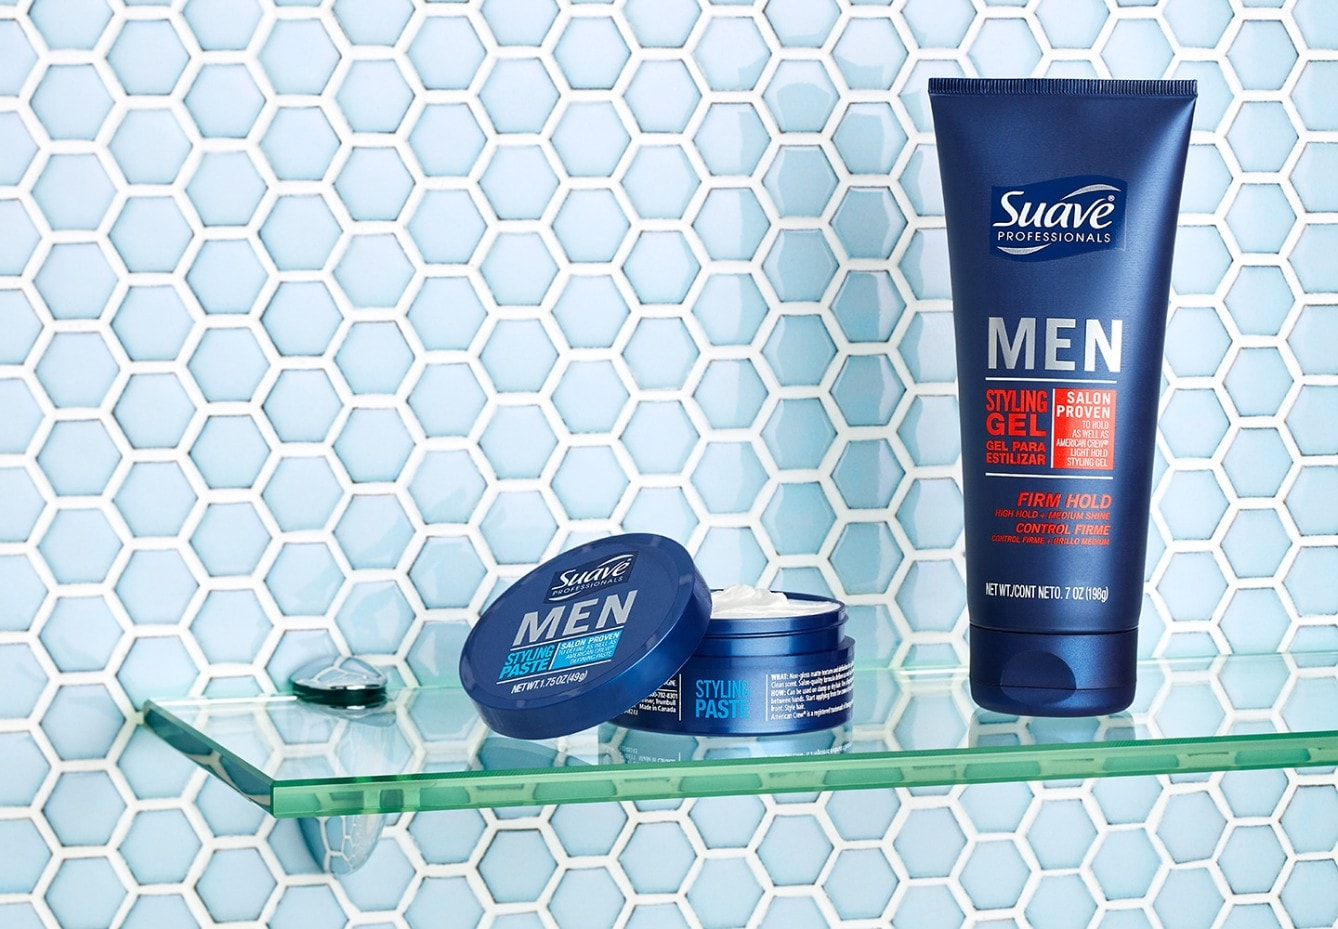 Container of Suave® Men Styling Paste and bottle of Suave Men® Styling Gel on a glass shelf in a tiled bathroom